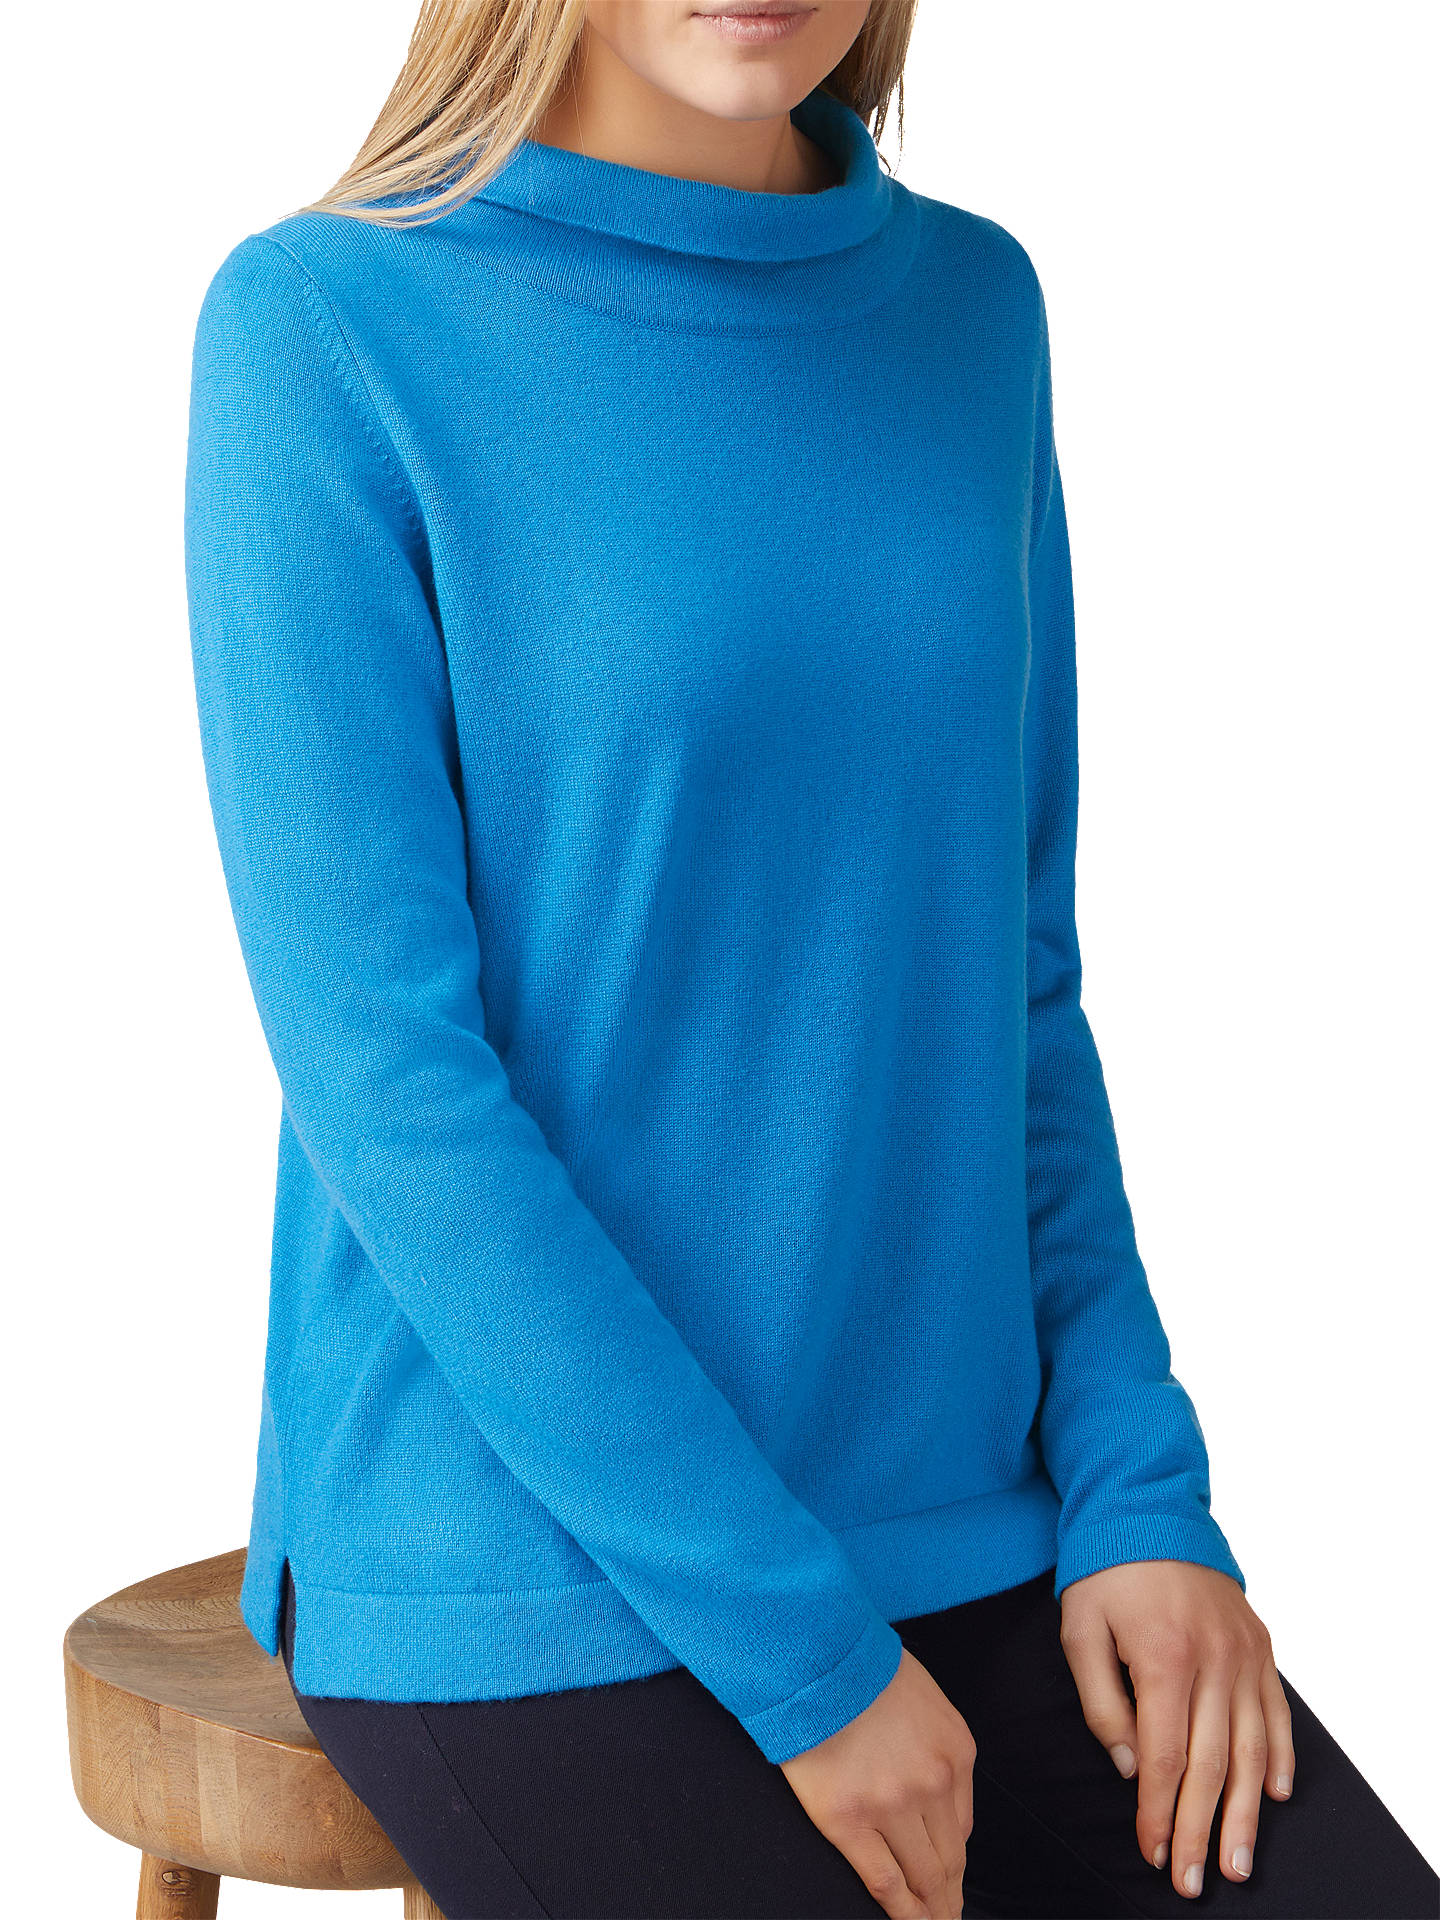 BuyPure Collection Toccato Bardot Jumper, Peacock Blue, 8 Online at johnlewis.com